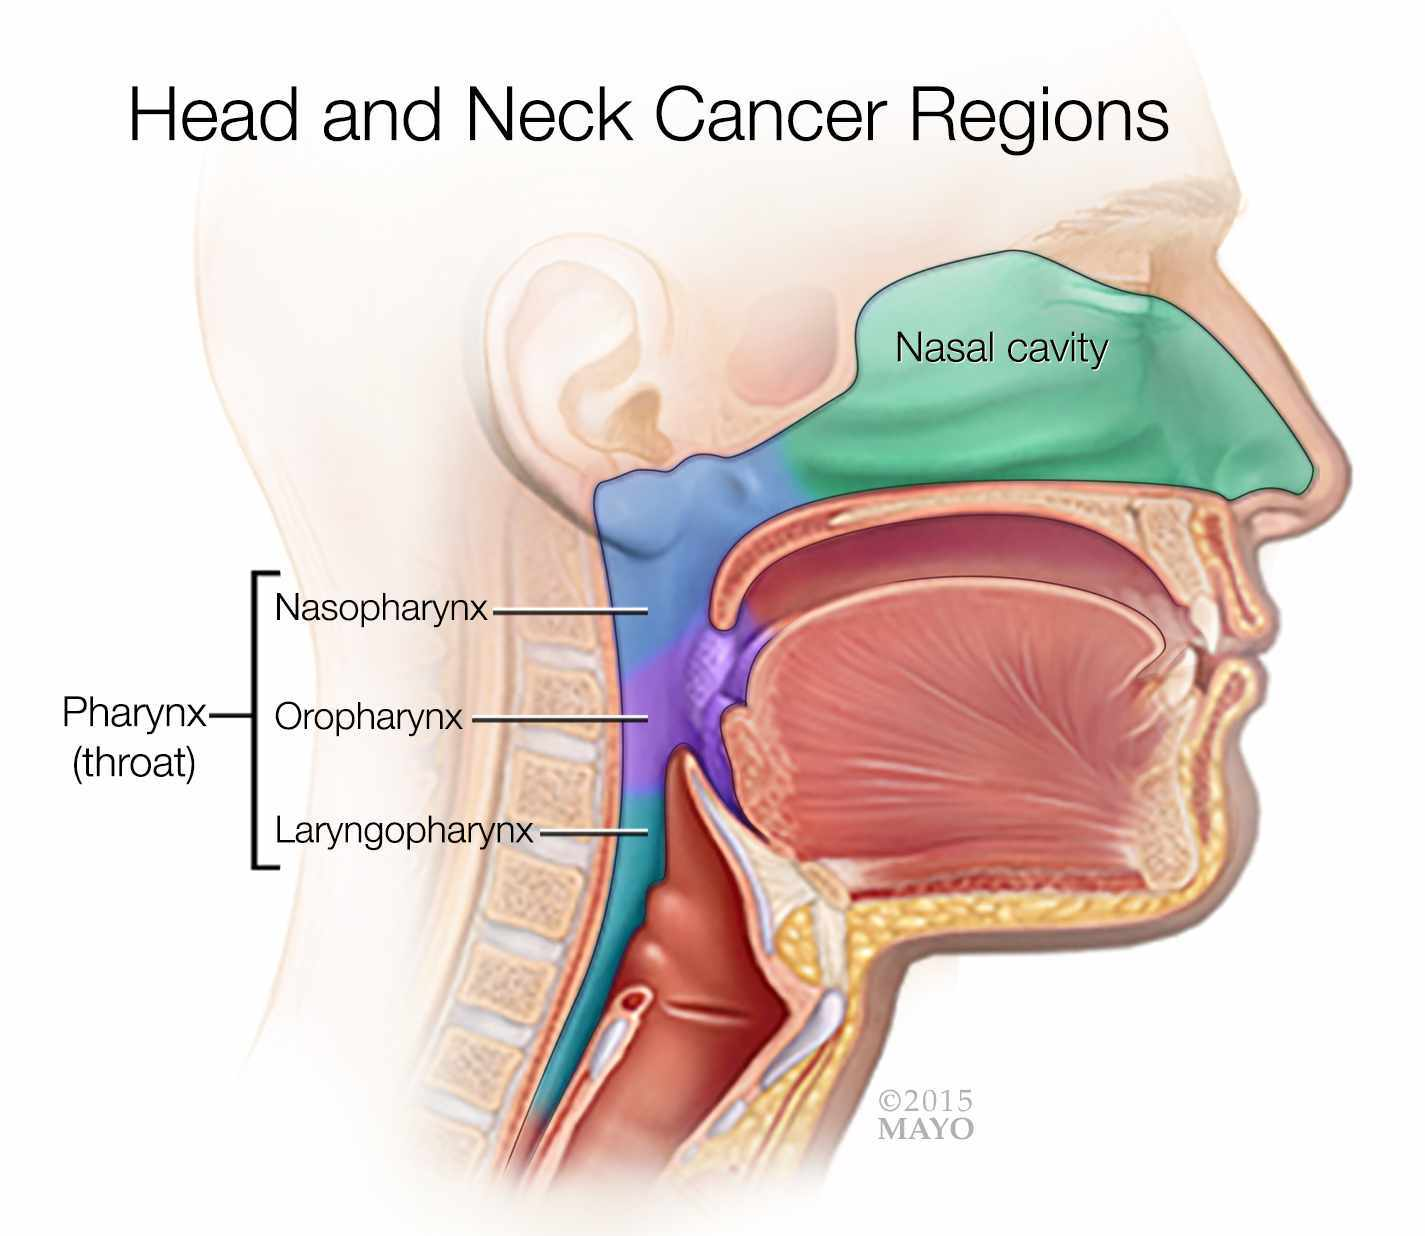 hight resolution of a medical illustrations of the head and neck cancer regions